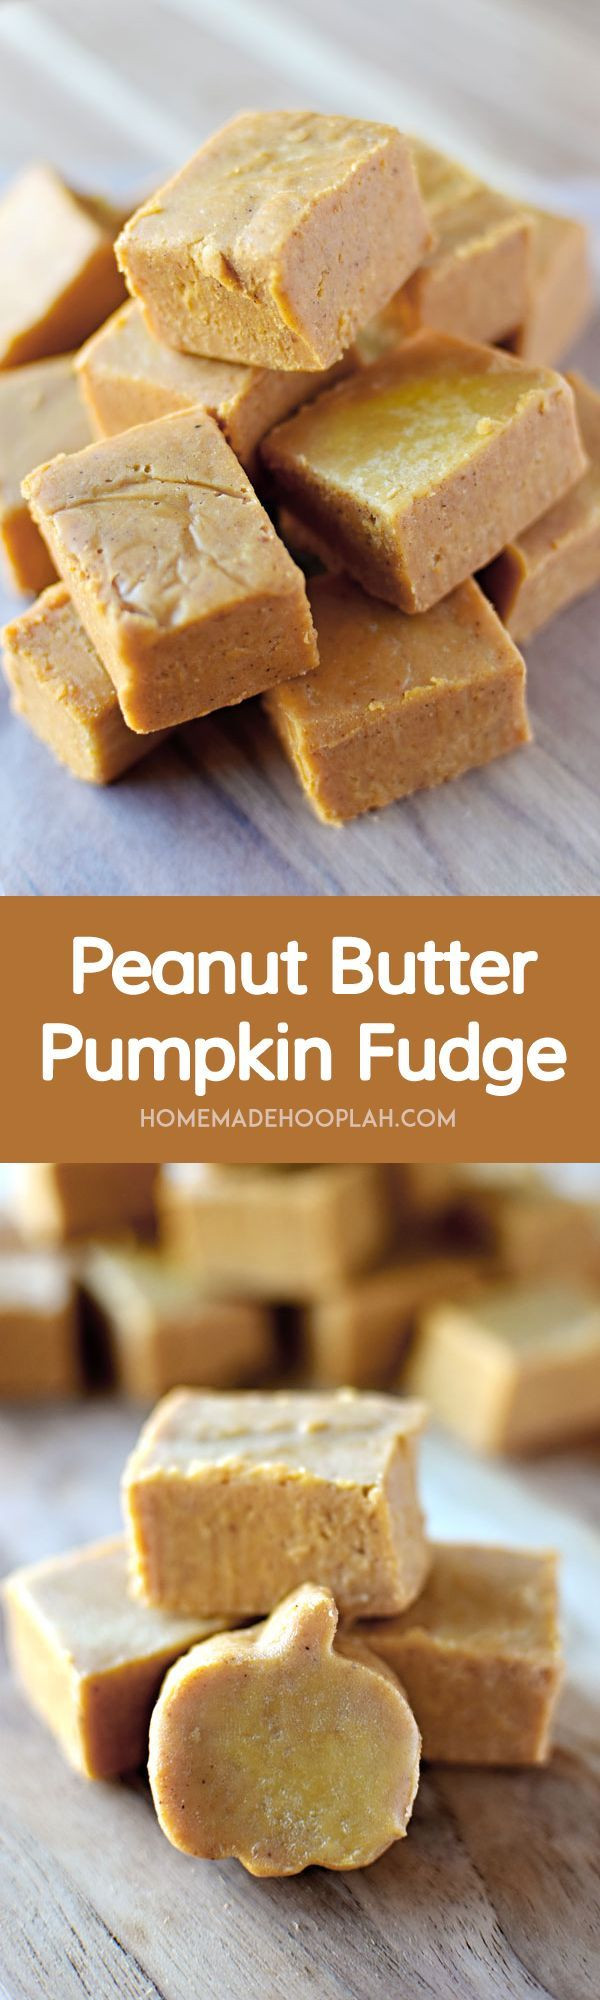 Peanut Butter Pumpkin Fudge! White chocolate fudge laced with peanut butter and pumpkin that you can whip together in less than 10 minutes! | HomemadeHooplah.com